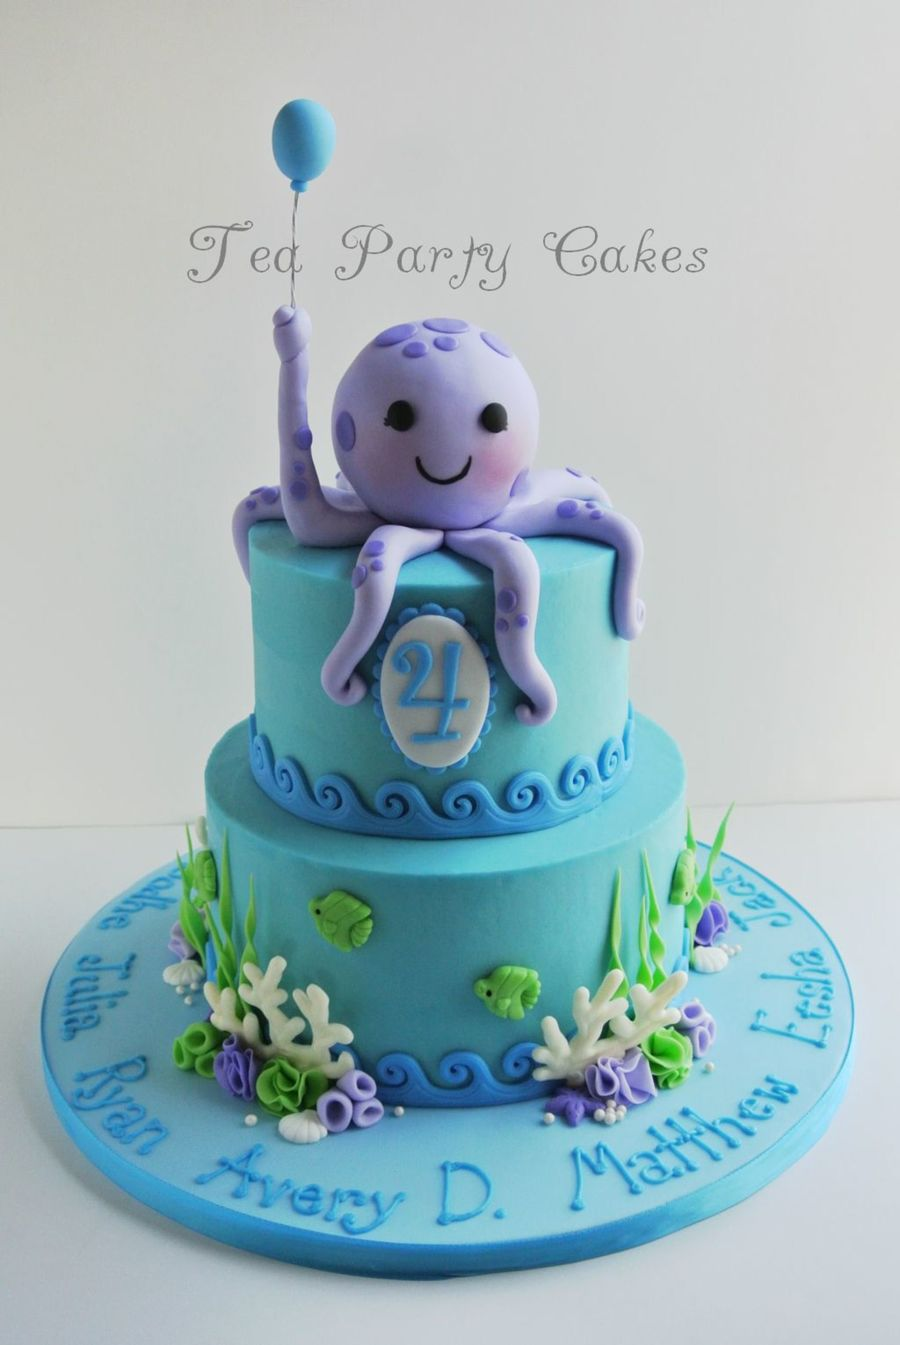 Birthday Cake That I Made For My Friends Baby Group That Was Celebrating Their 4Th Birthdays 6 And 8 Inch Buttercream Cakes With Fondant D... on Cake Central